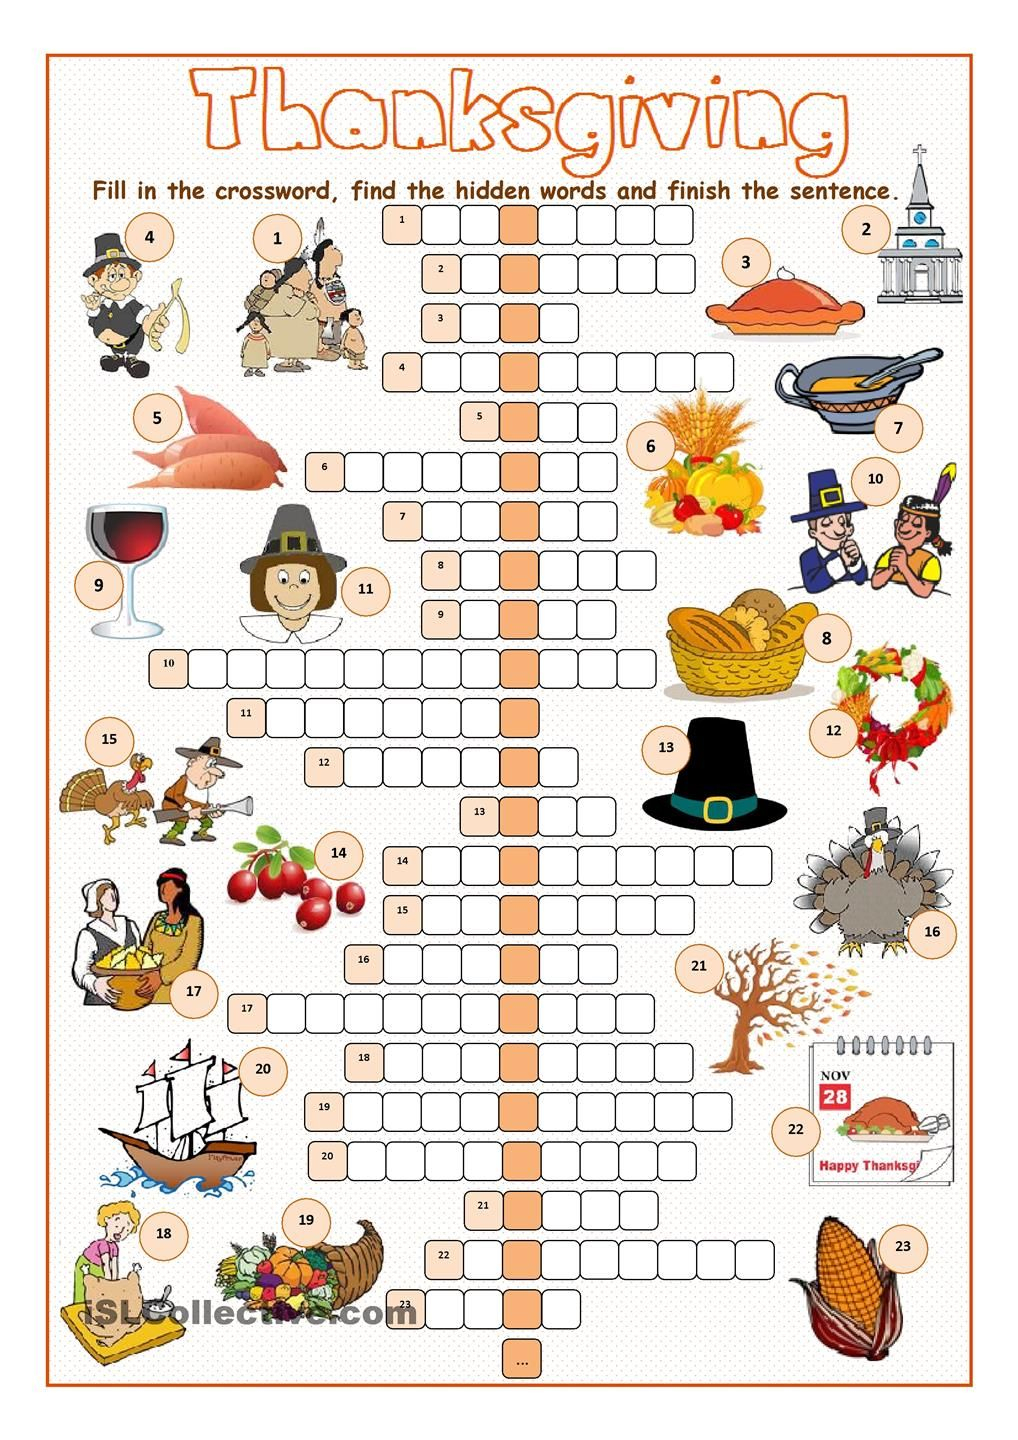 Thanksgiving Crossword Puzzle … | Puzzles | Thank… - Printable Thanksgiving Crossword Puzzles For Middle School